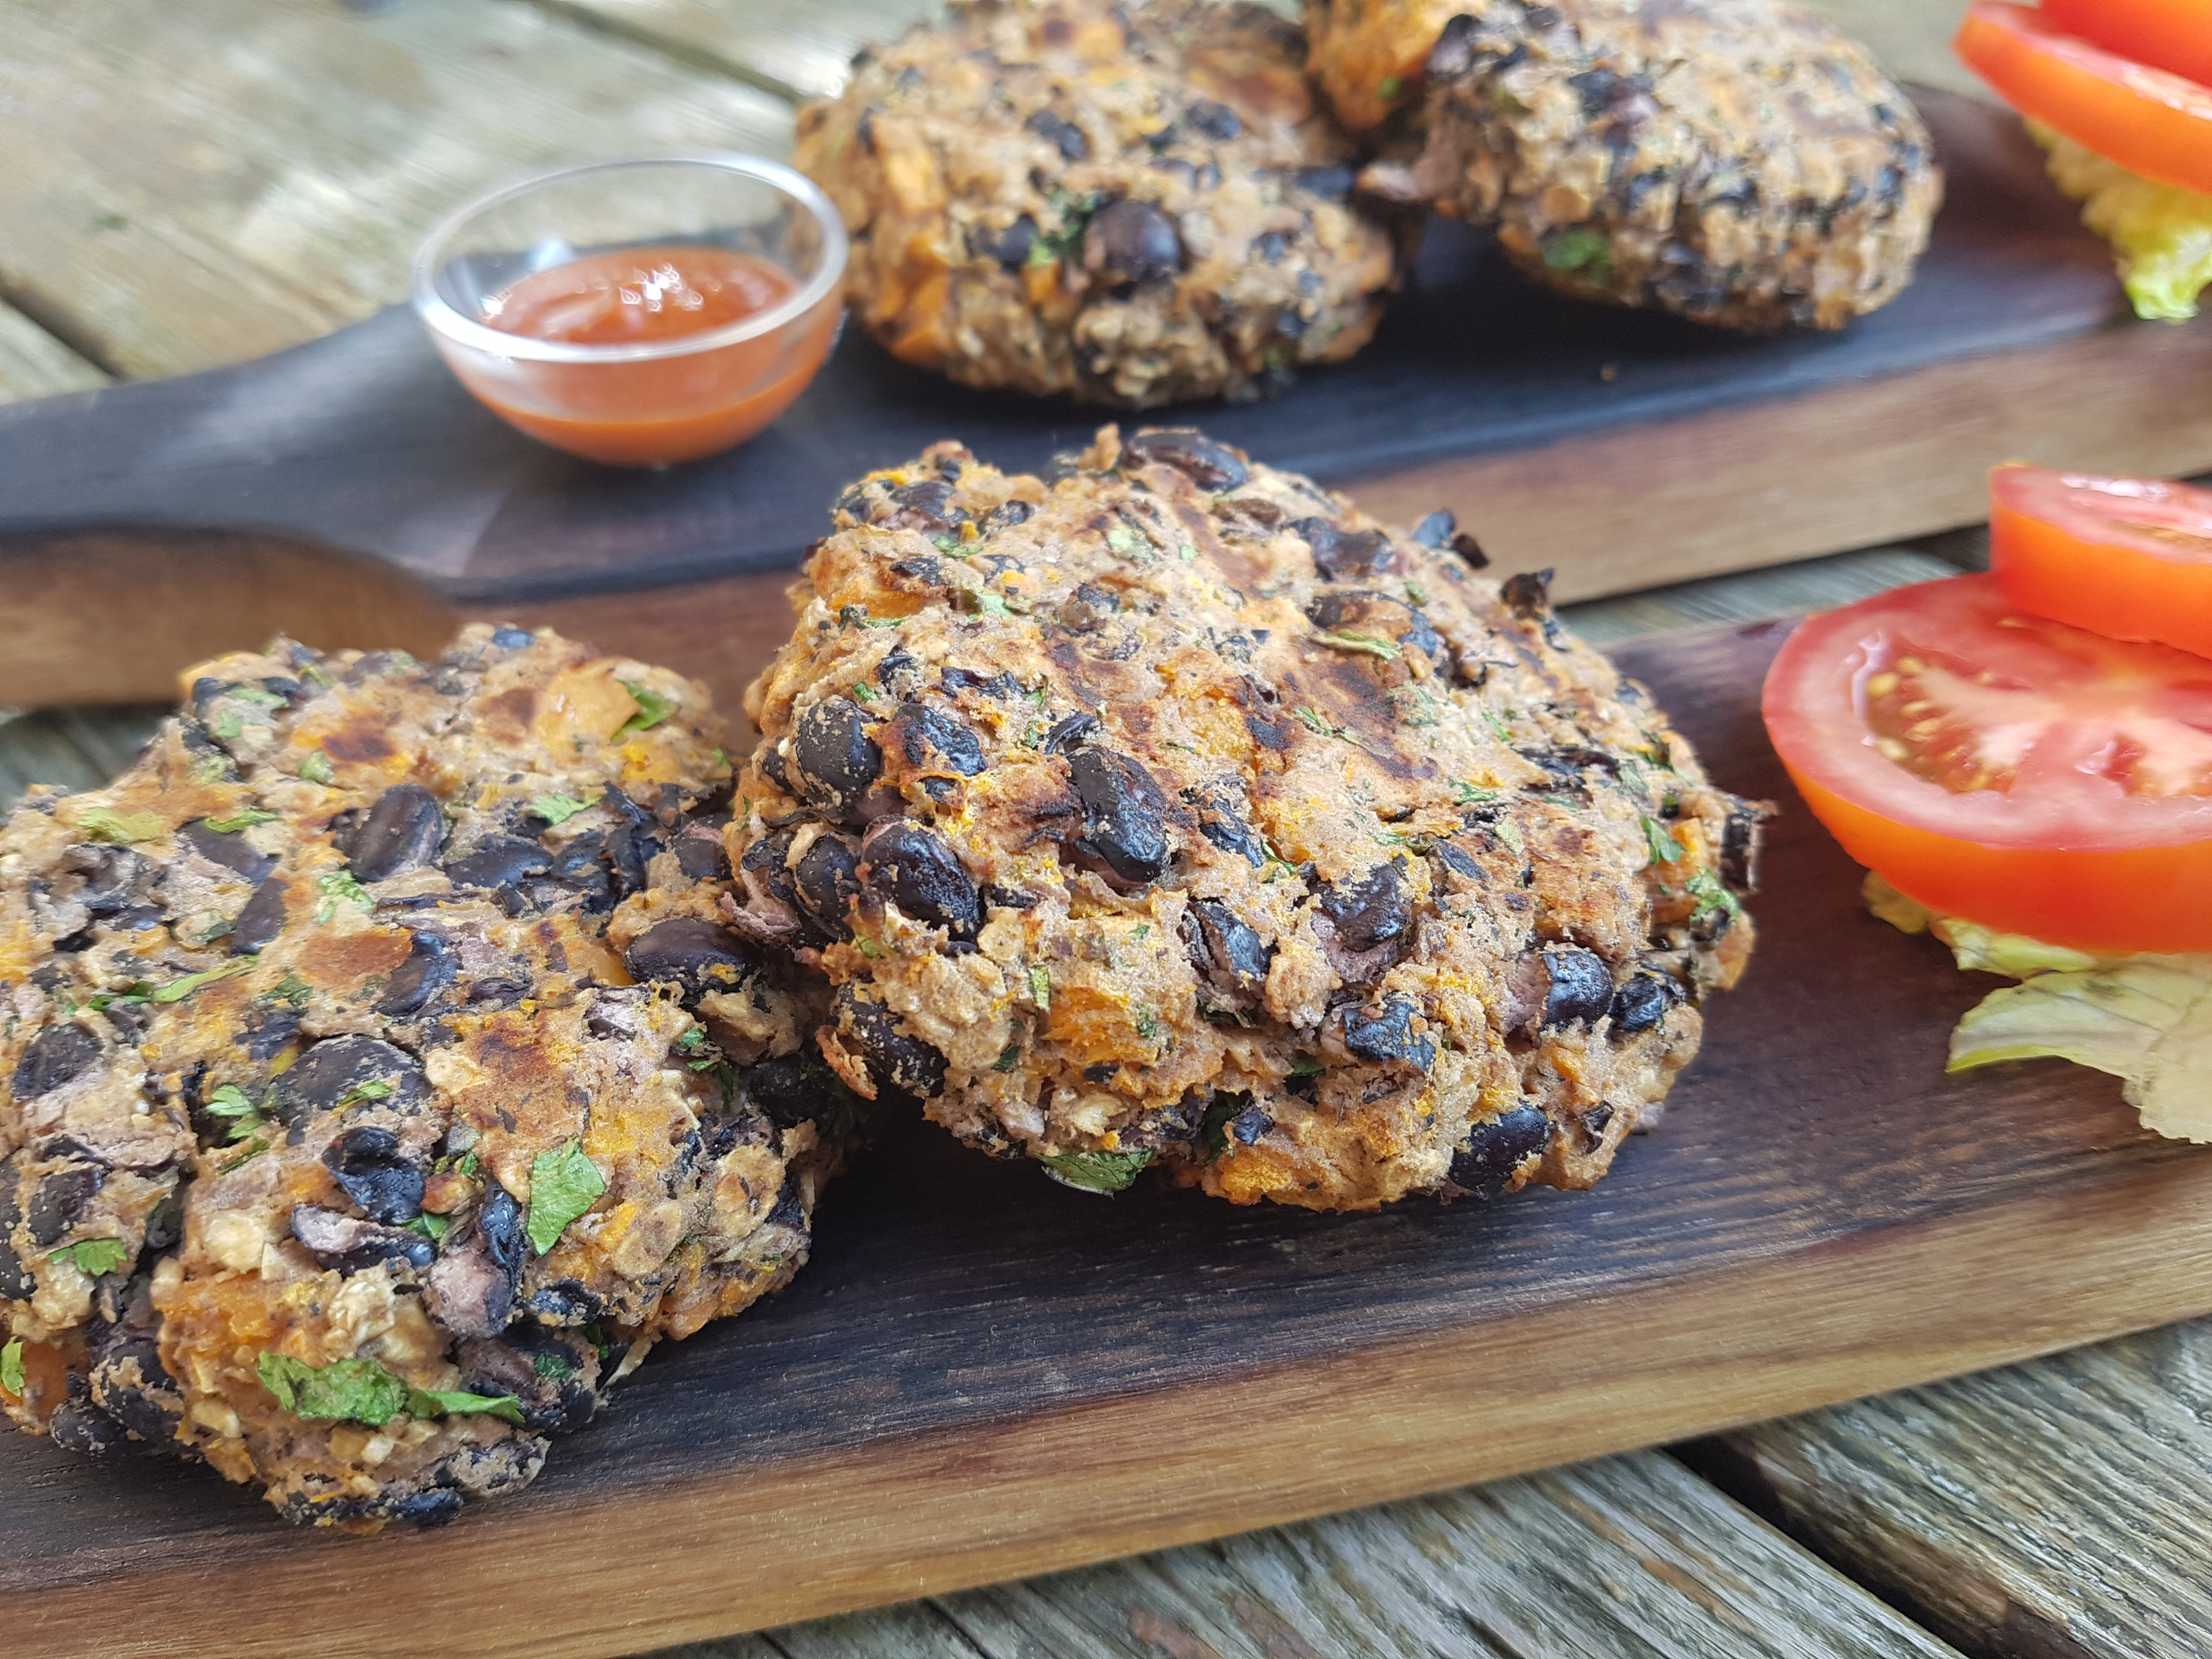 Sweet potato and black bean burger patties on wooden board with tomato slices